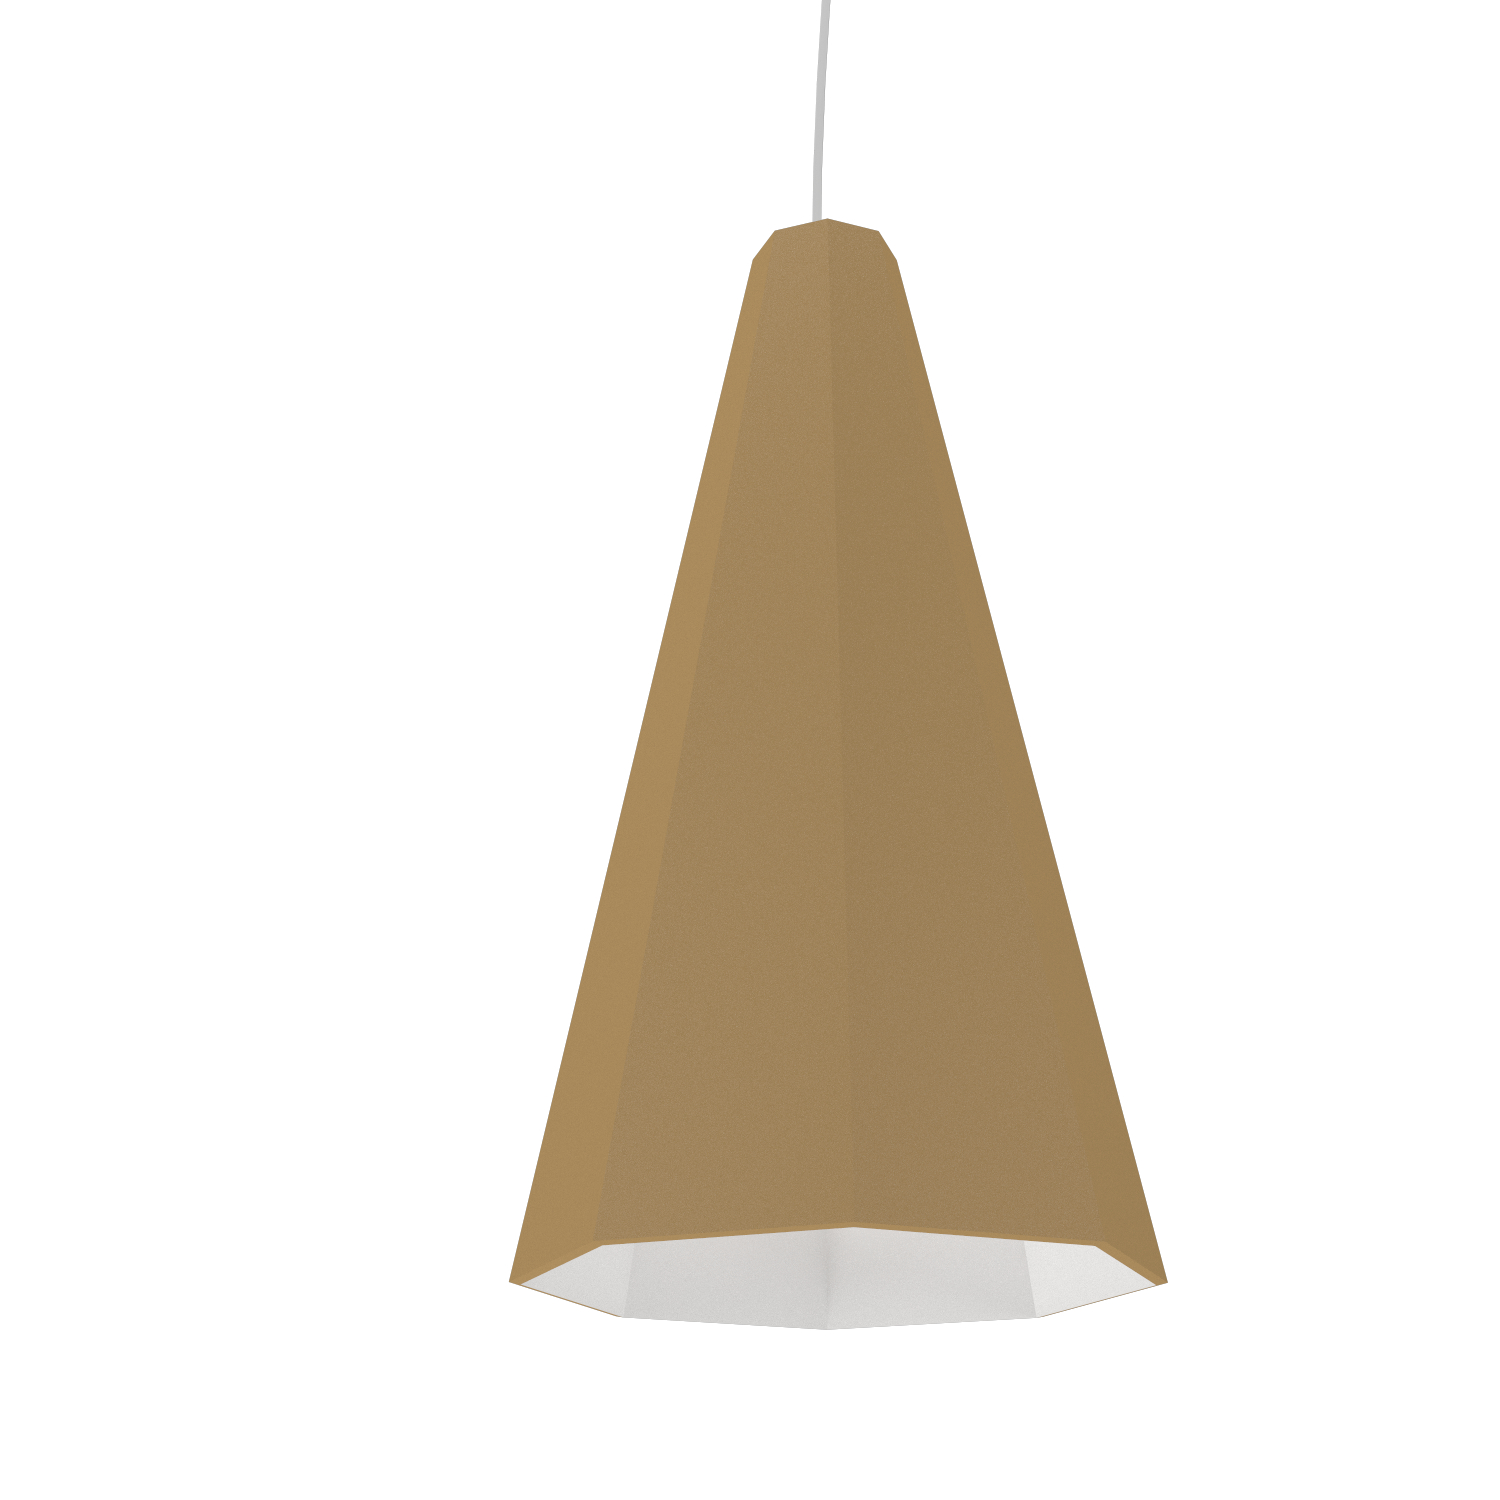 Pendant Lamp Accord Facetado 1231 - Facetada Line Accord Lighting | 27. Gold